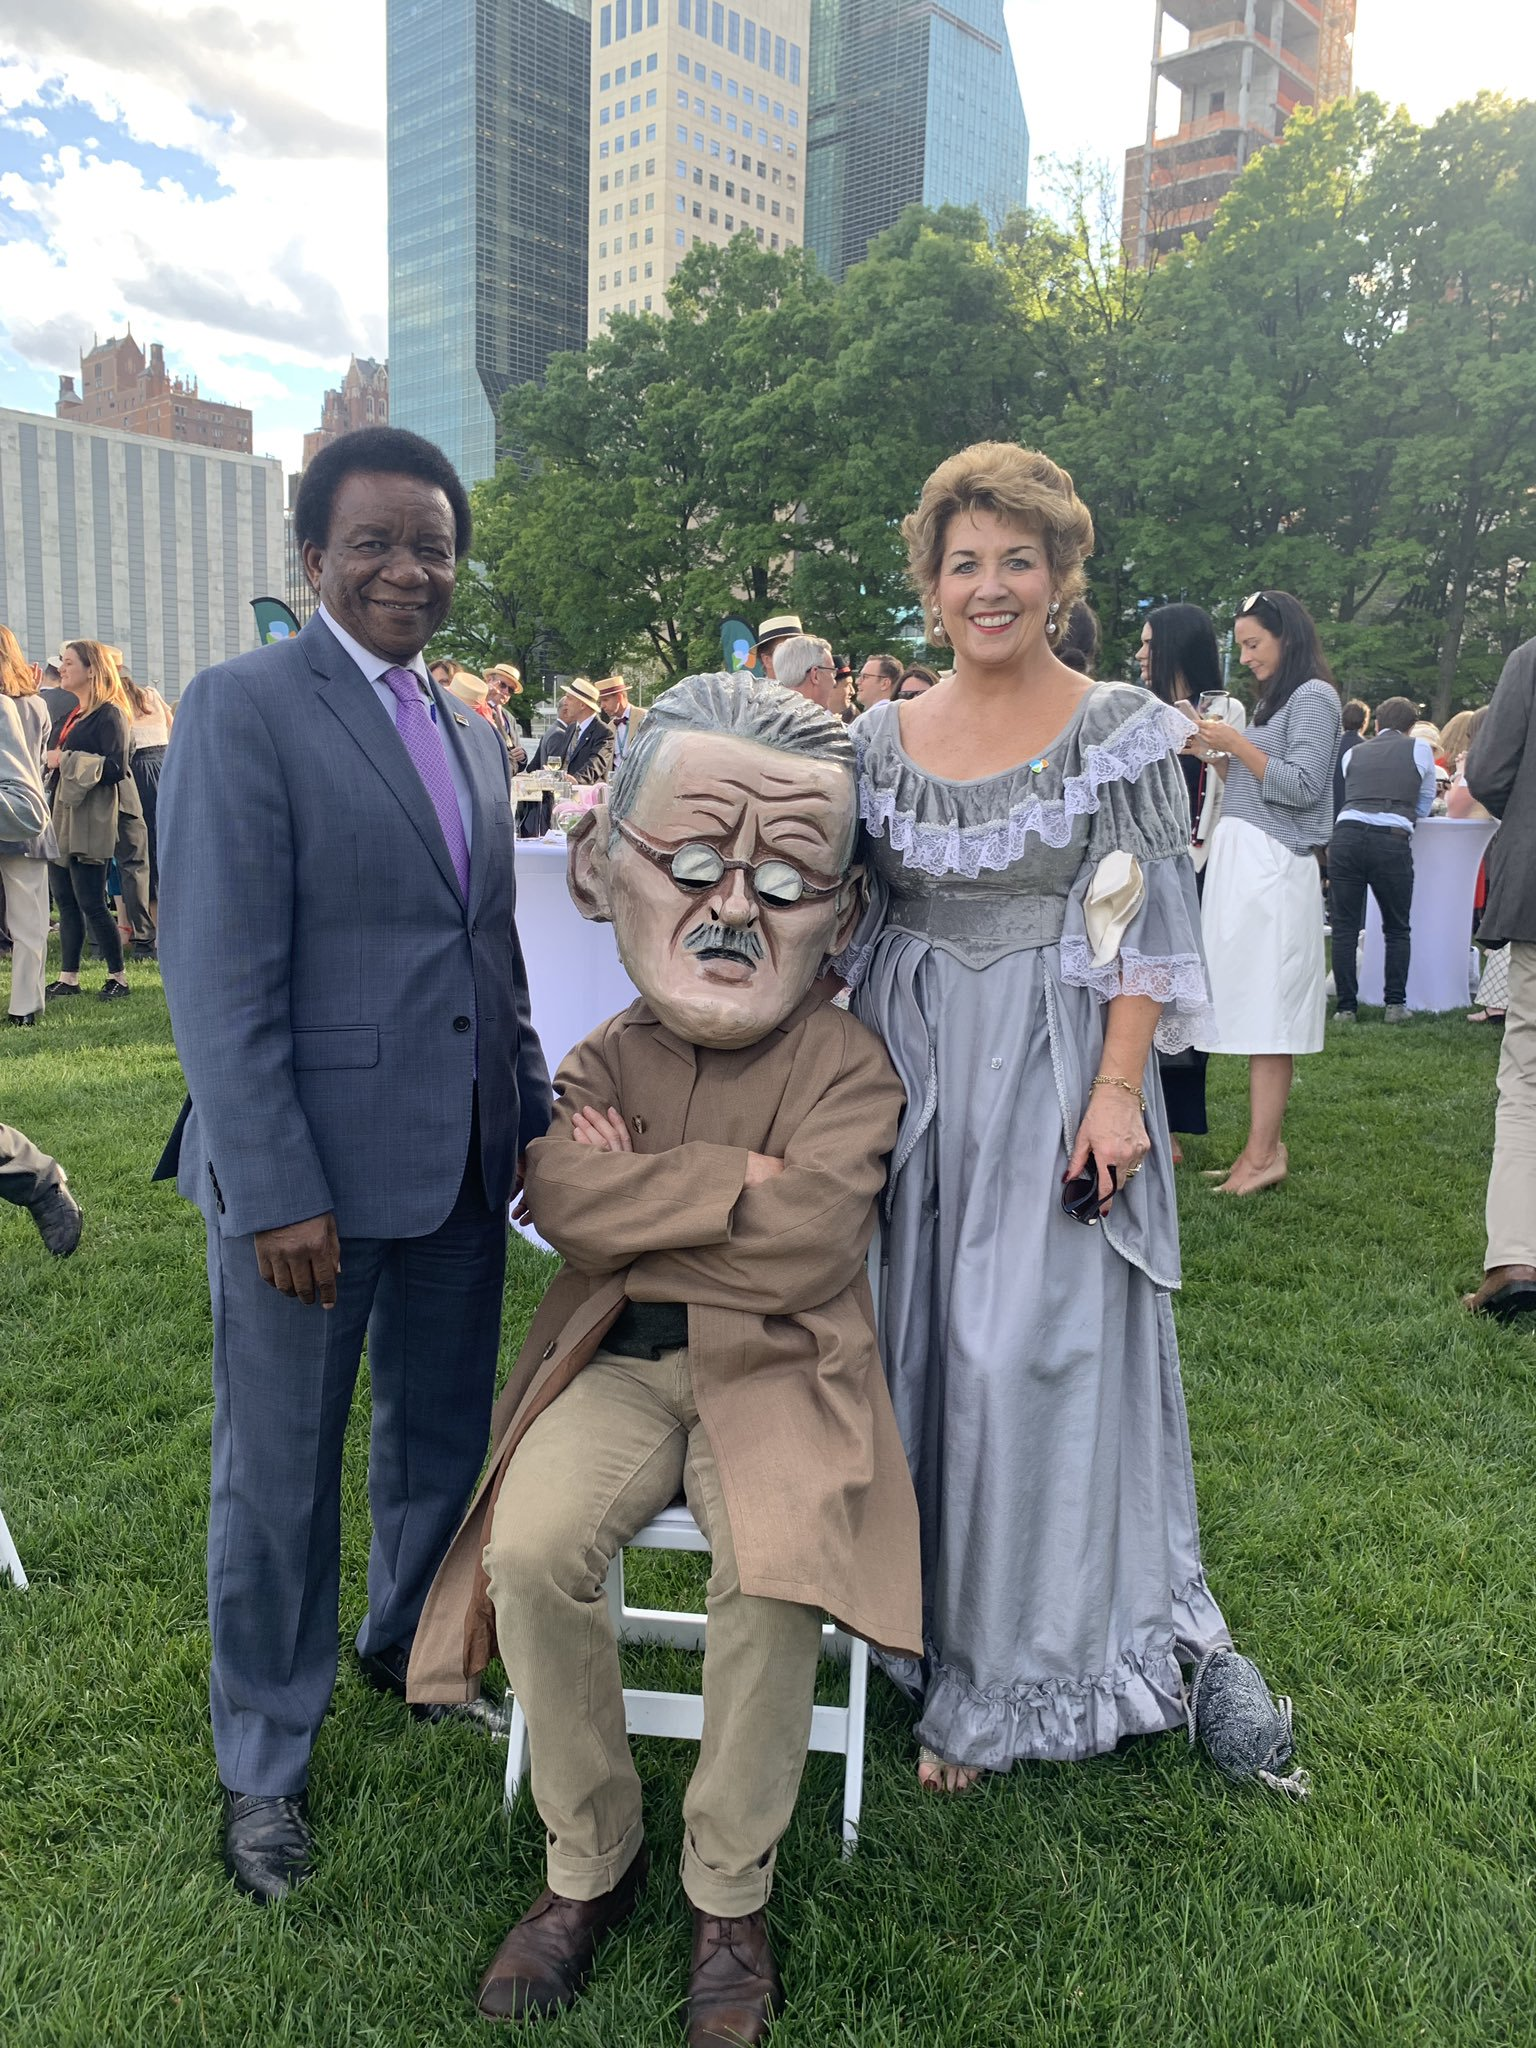 Ambassador Geraldine Byrne Nason takes part in the first Bloomsday festival to be held at the United Nations in New York